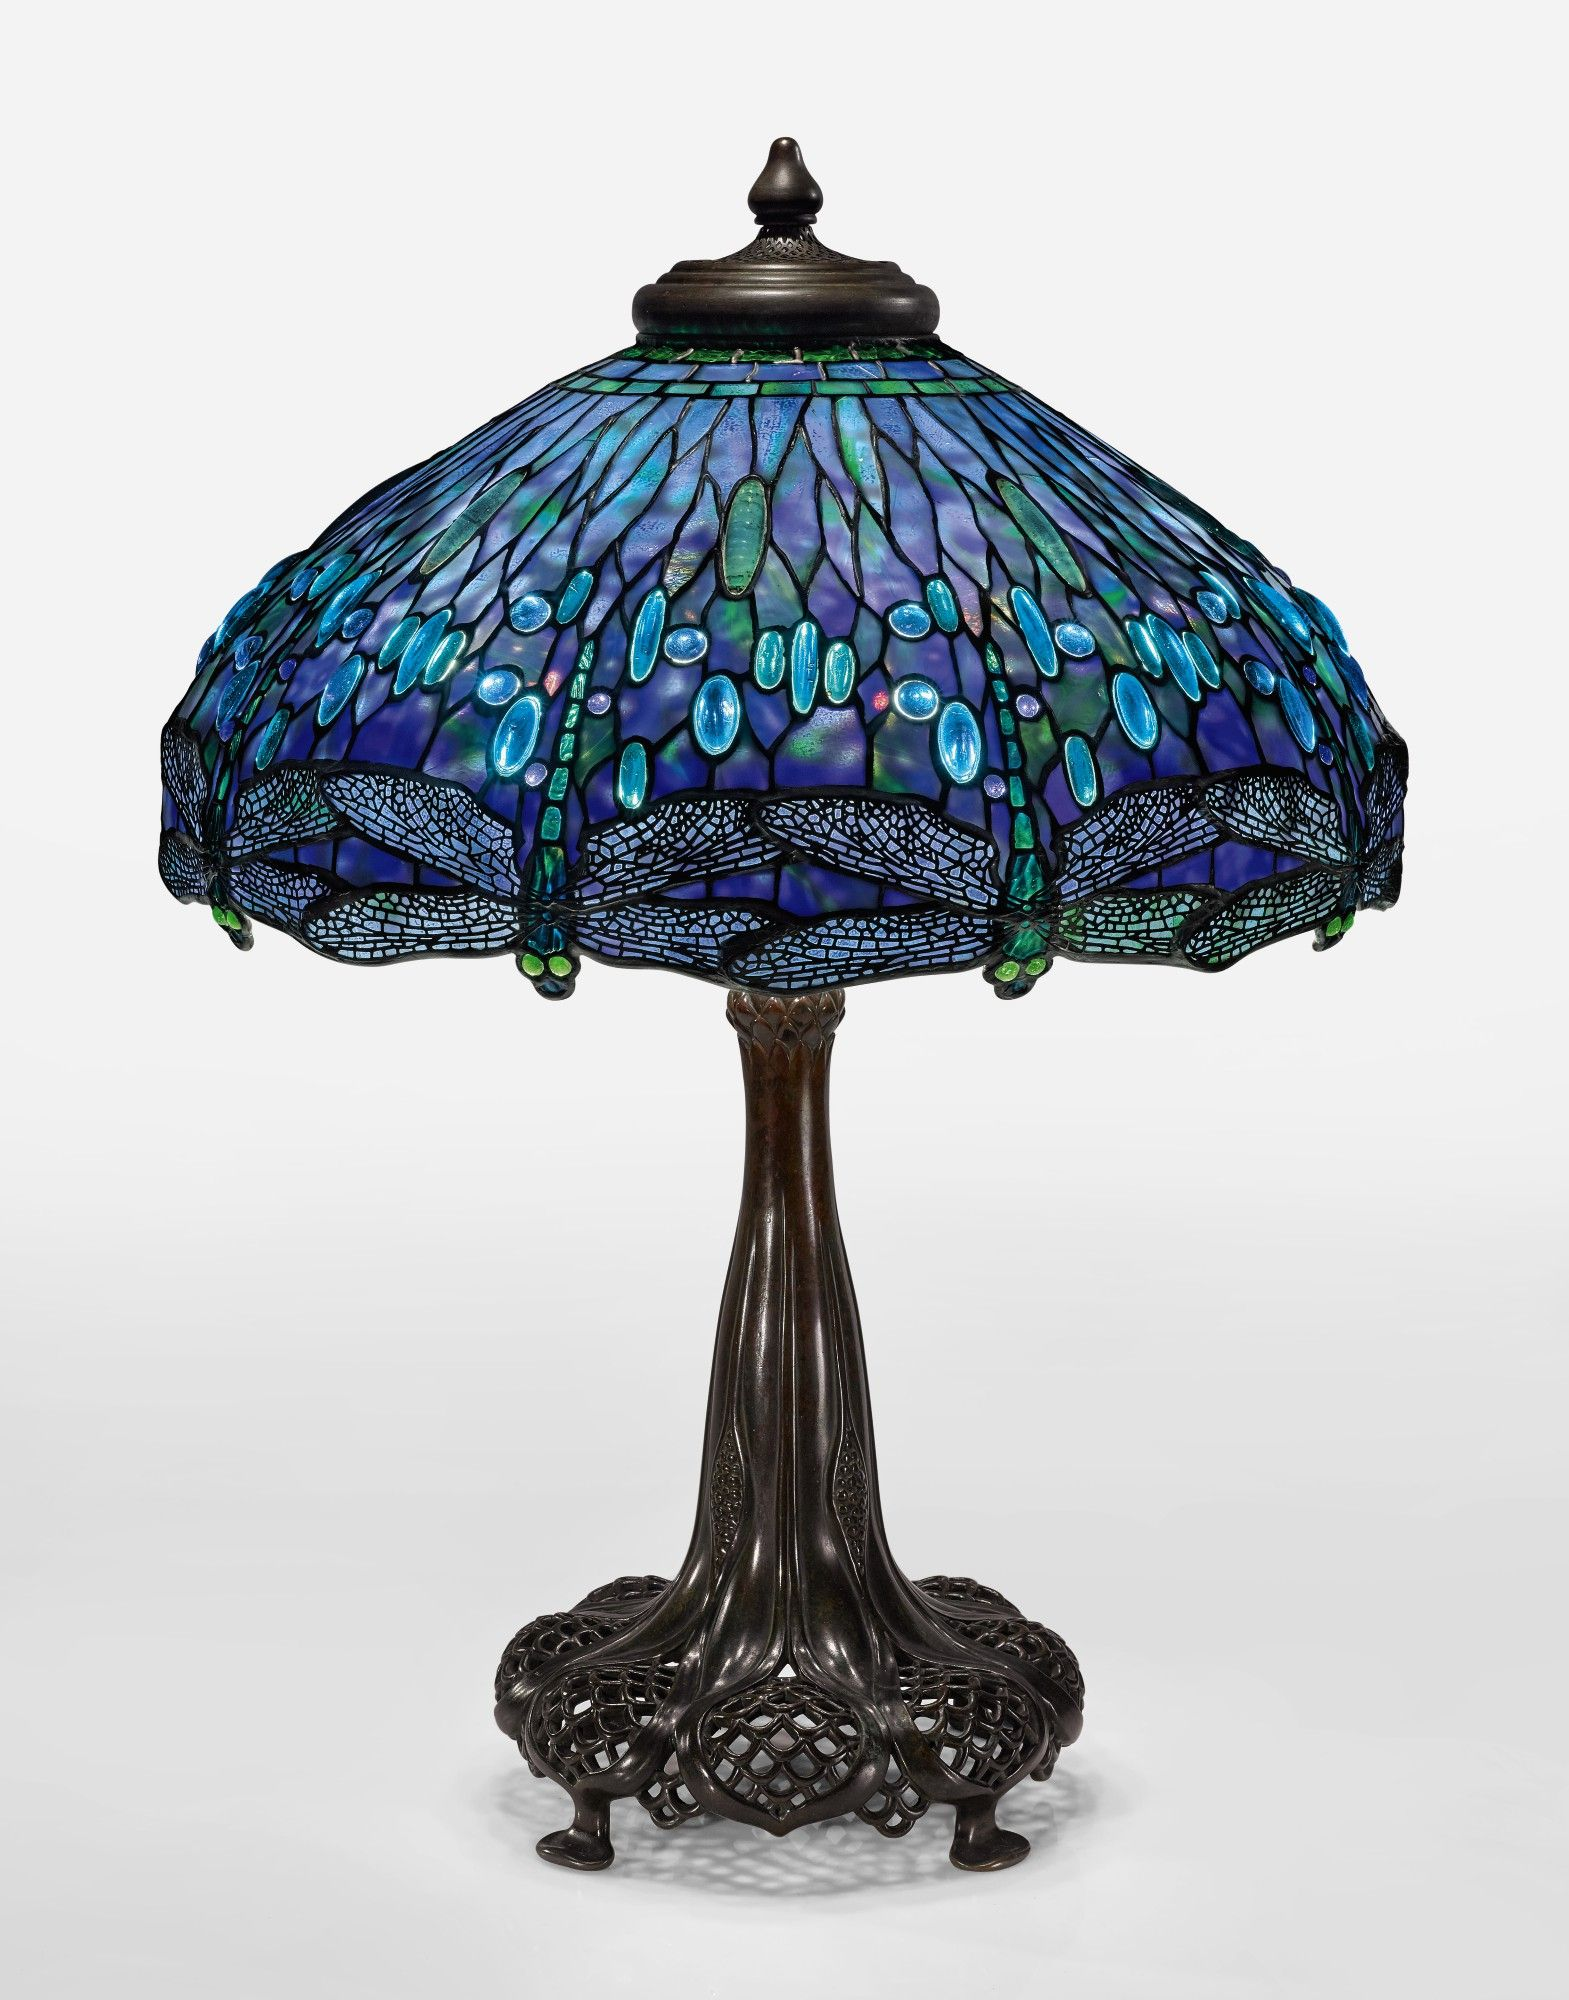 Tiffany Studios An Important Dragonfly Table Lamp Dreaming In Glass Masterworks In 2020 Stained Glass Table Lamps Tiffany Style Table Lamps Tiffany Table Lamps